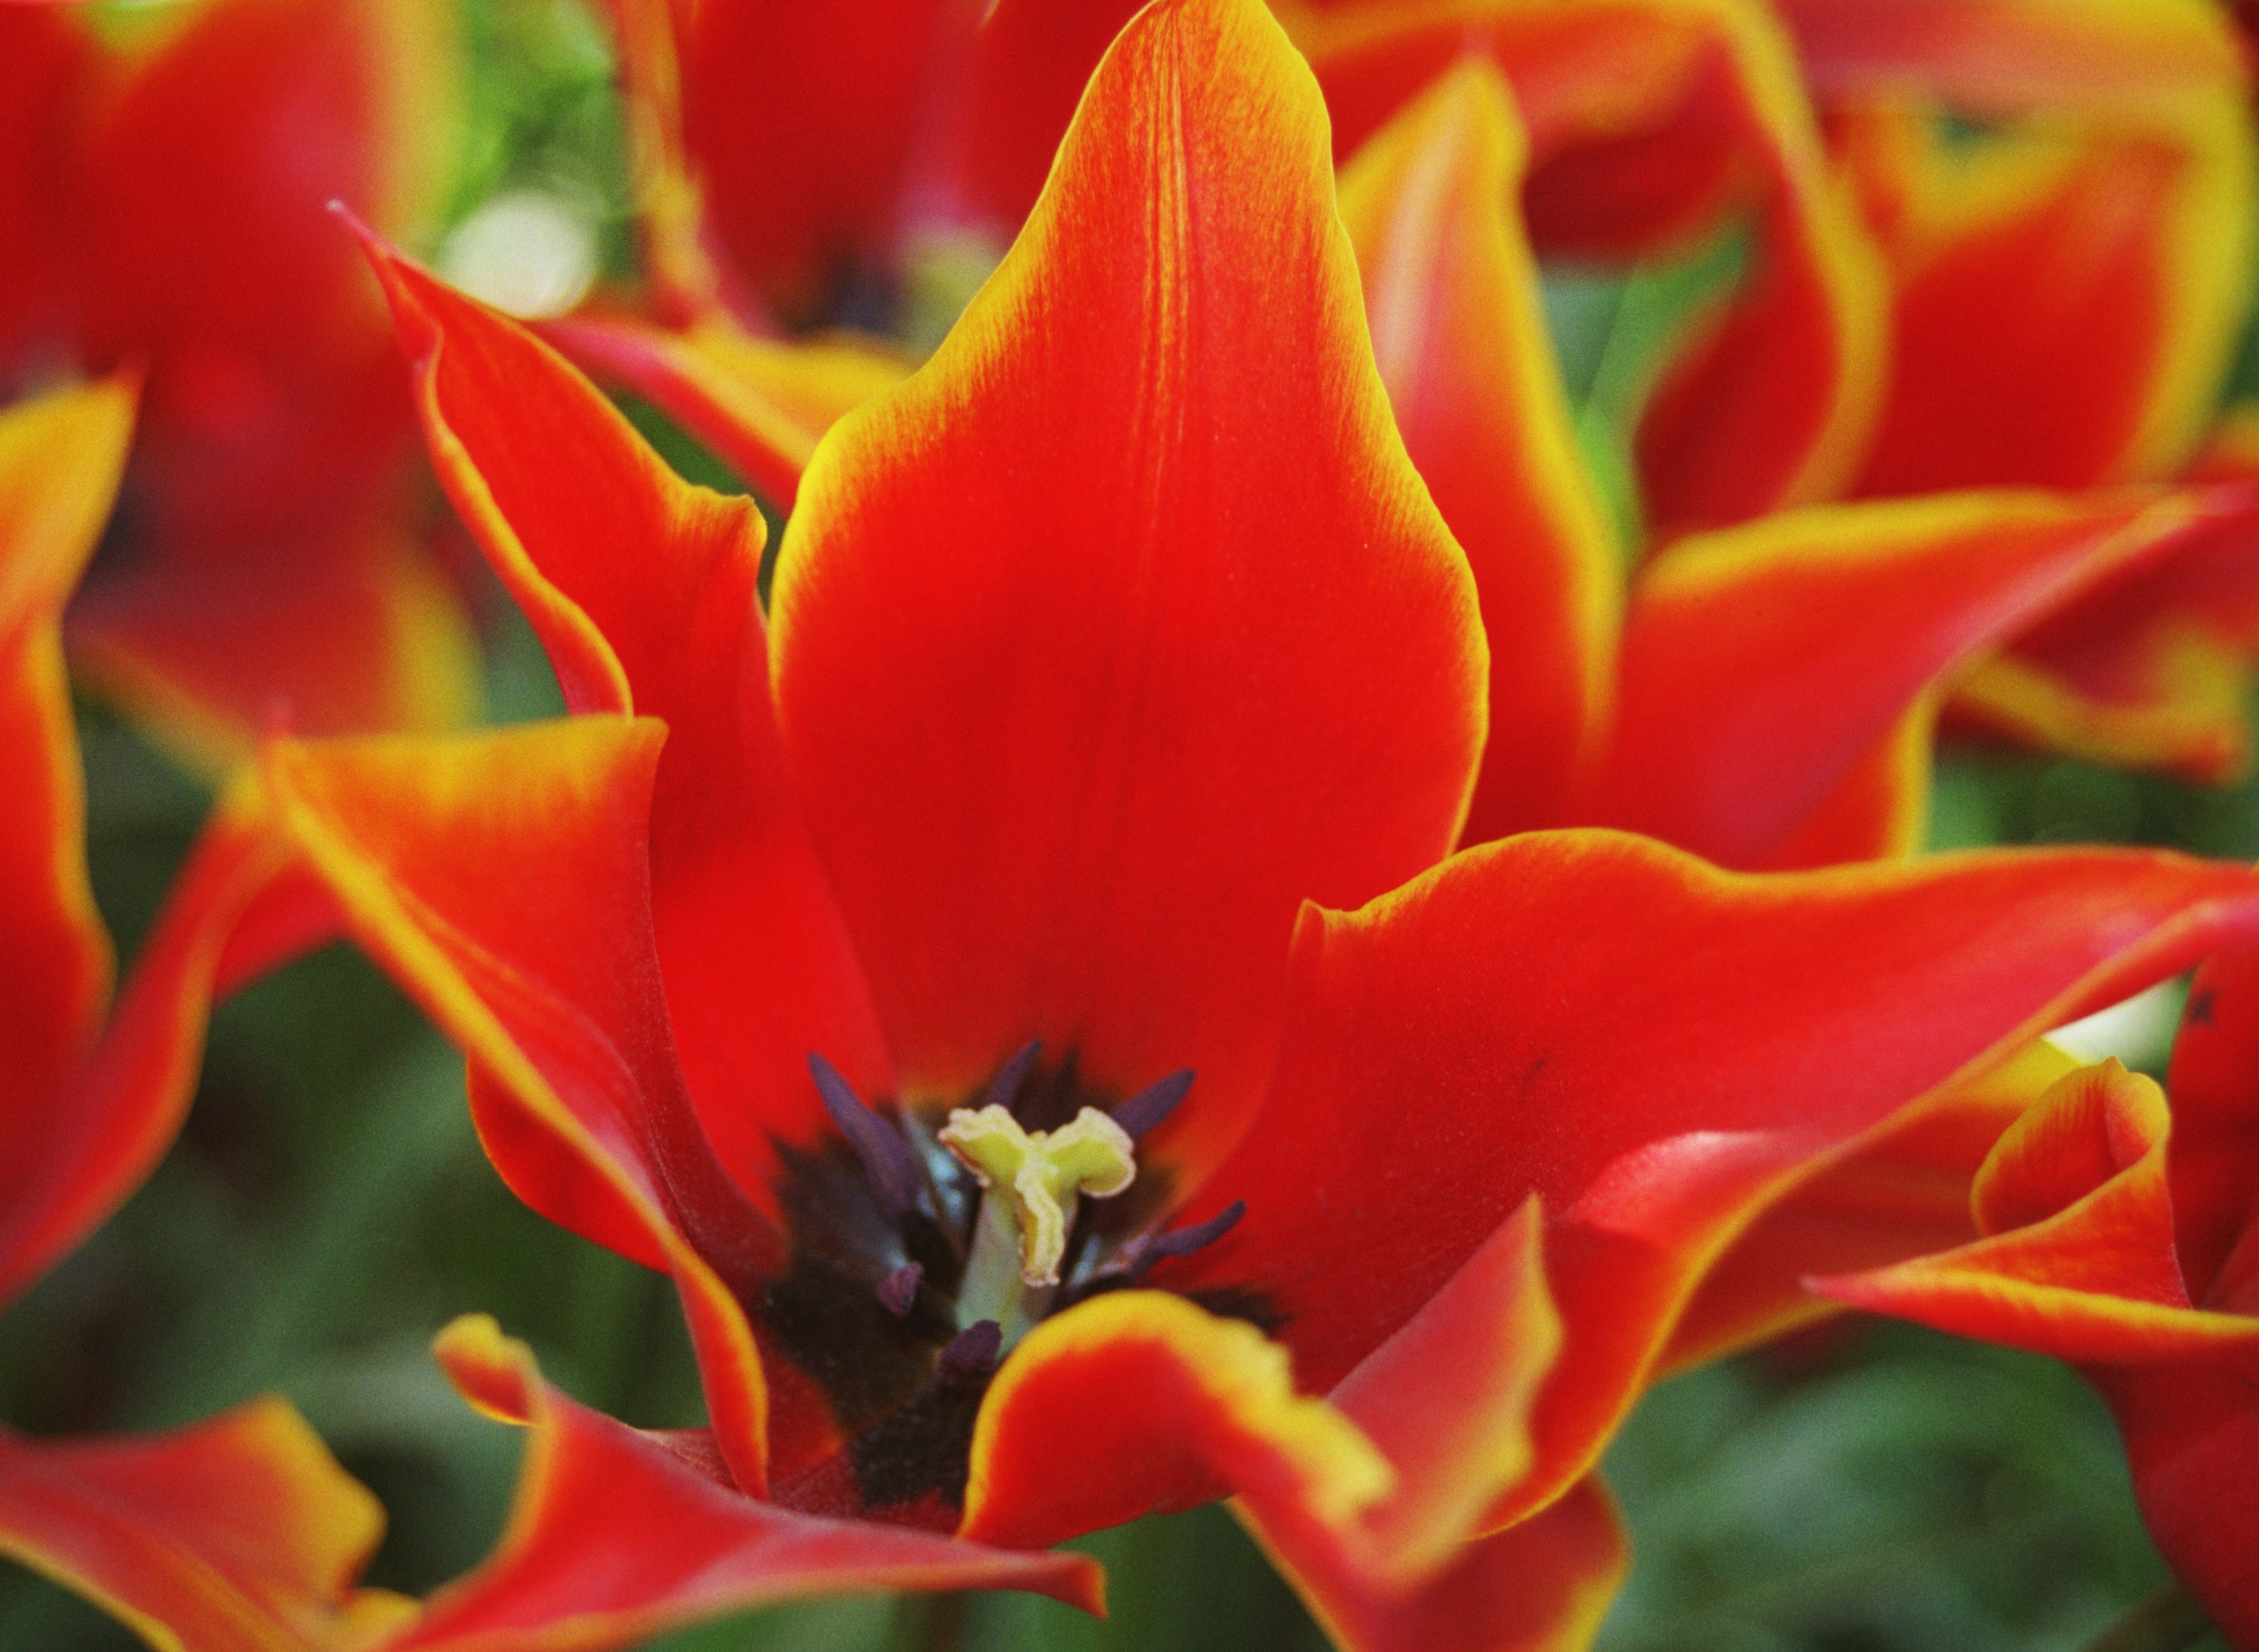 Fire Tulips - Skagit Valley Tulip Festival, WA